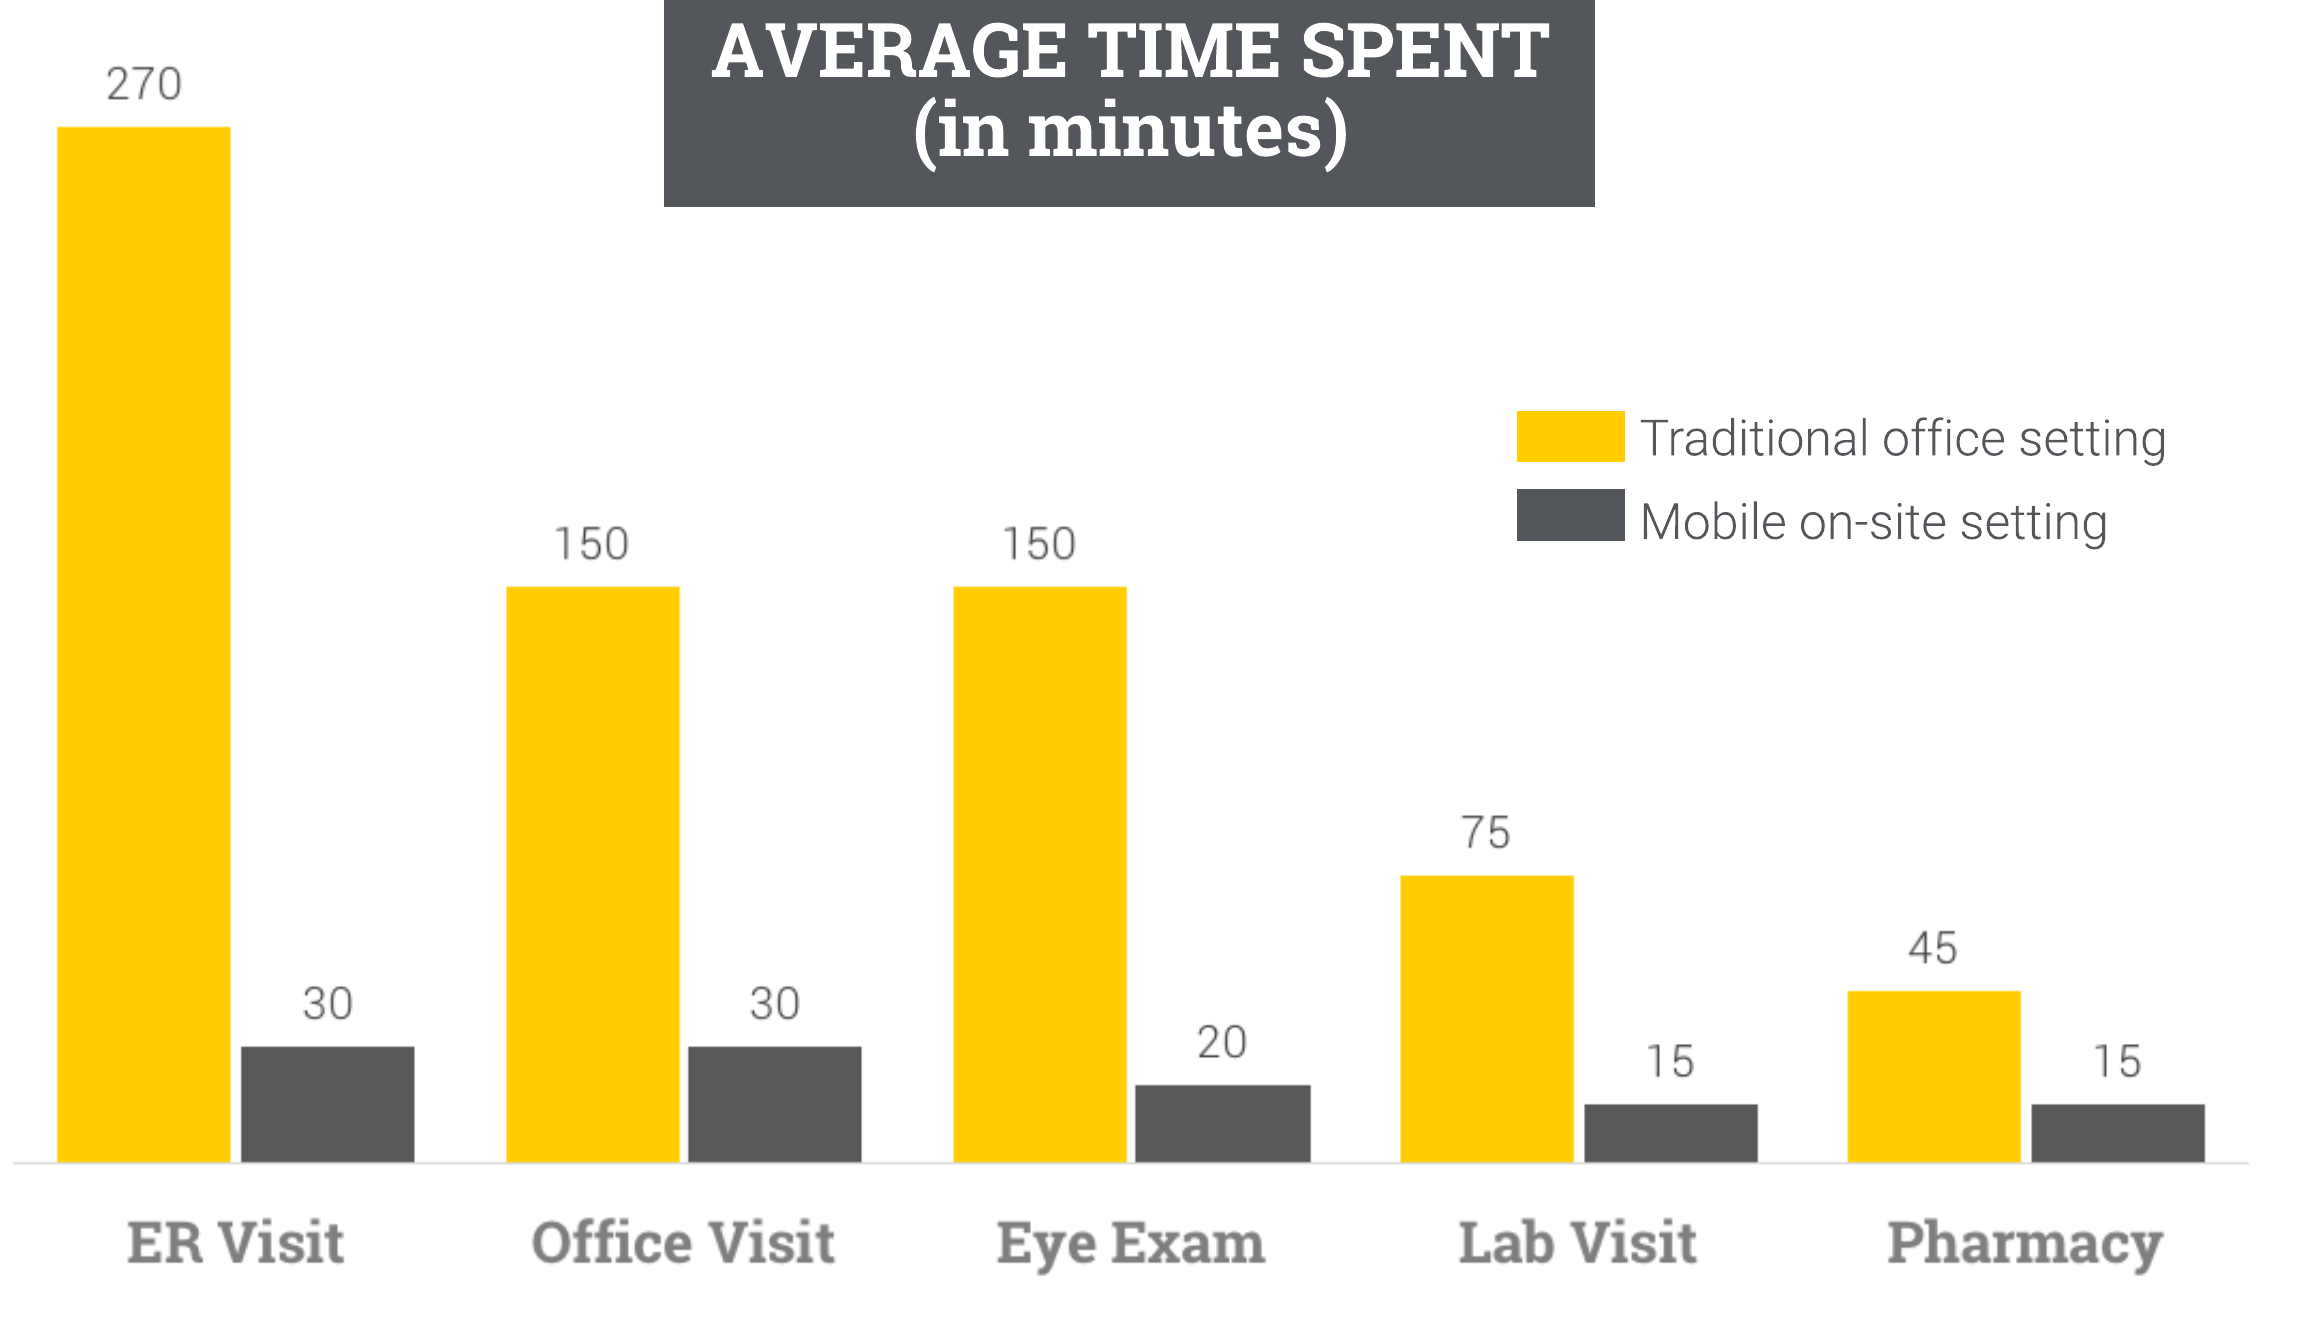 onsite clinic comparison versus traditional office setting